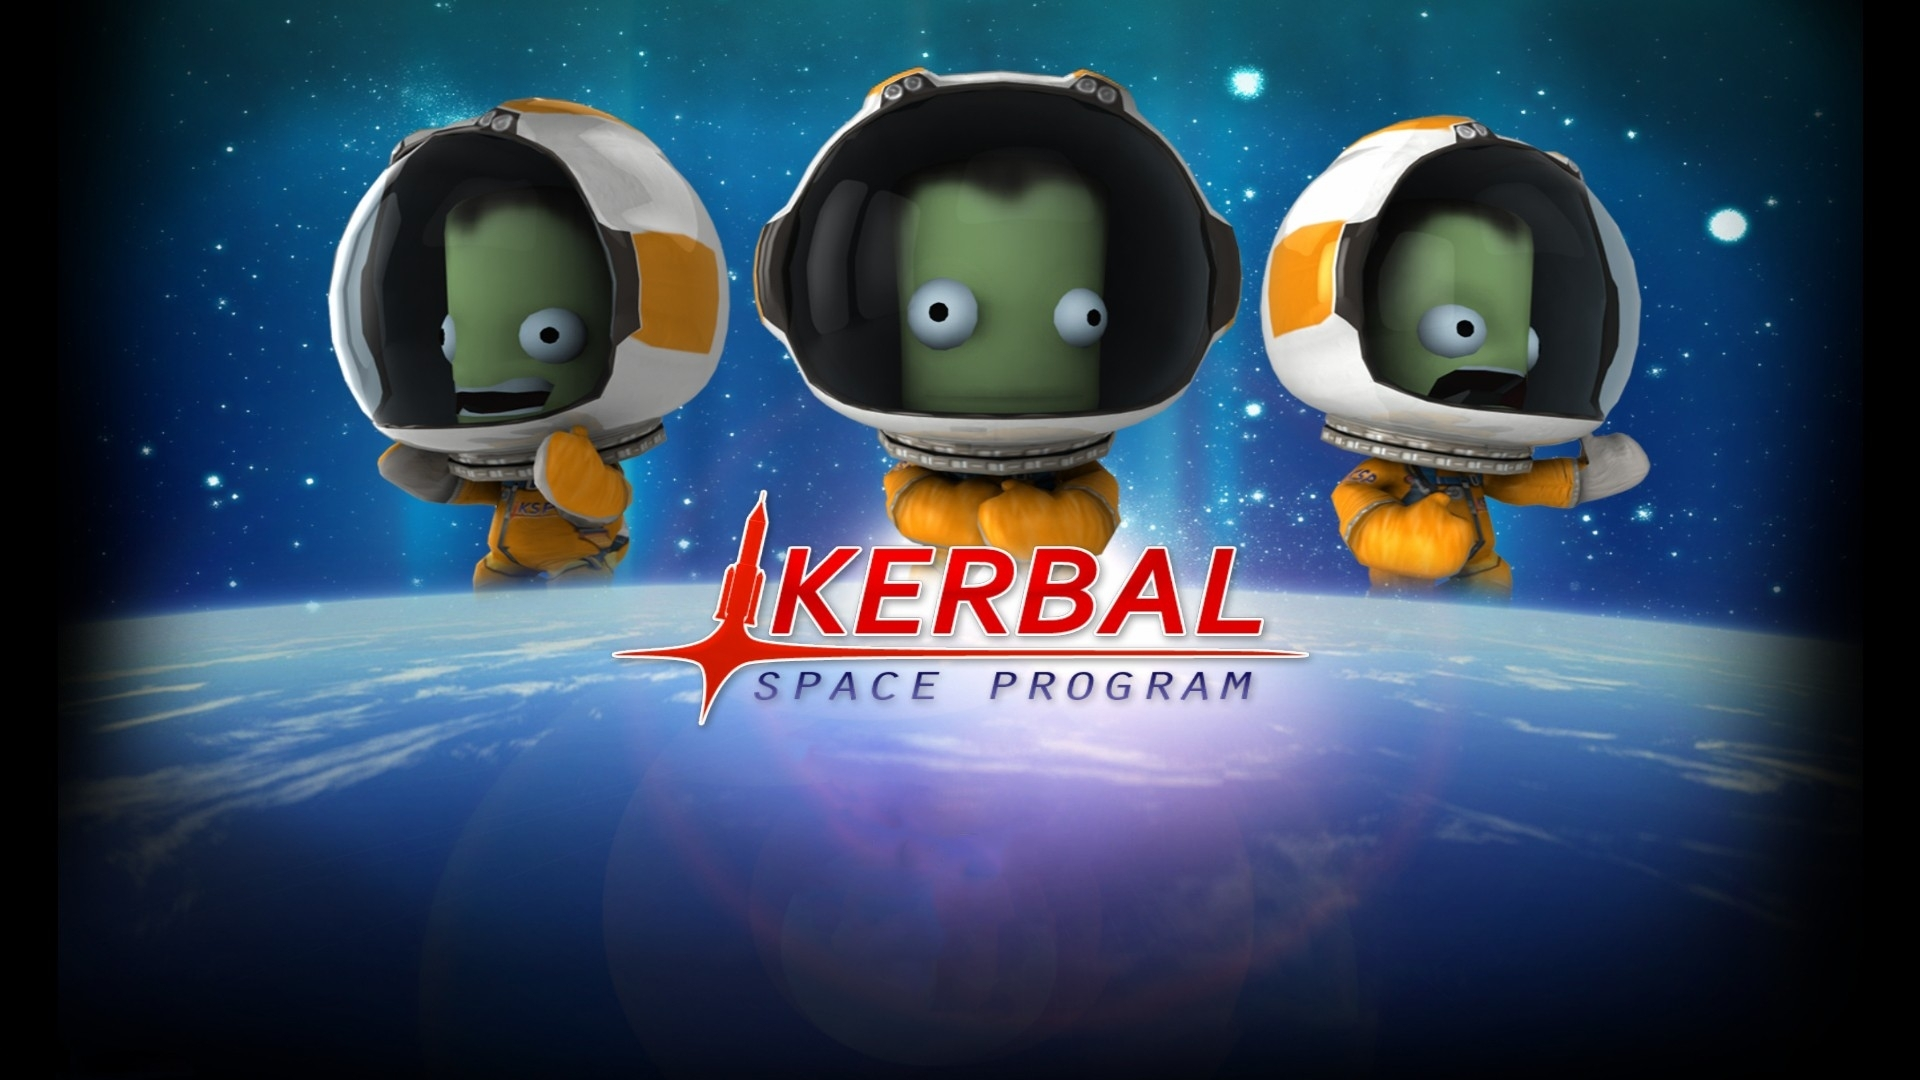 Take-Two Interactive acquires 'Kerbal Space Program' (updated)